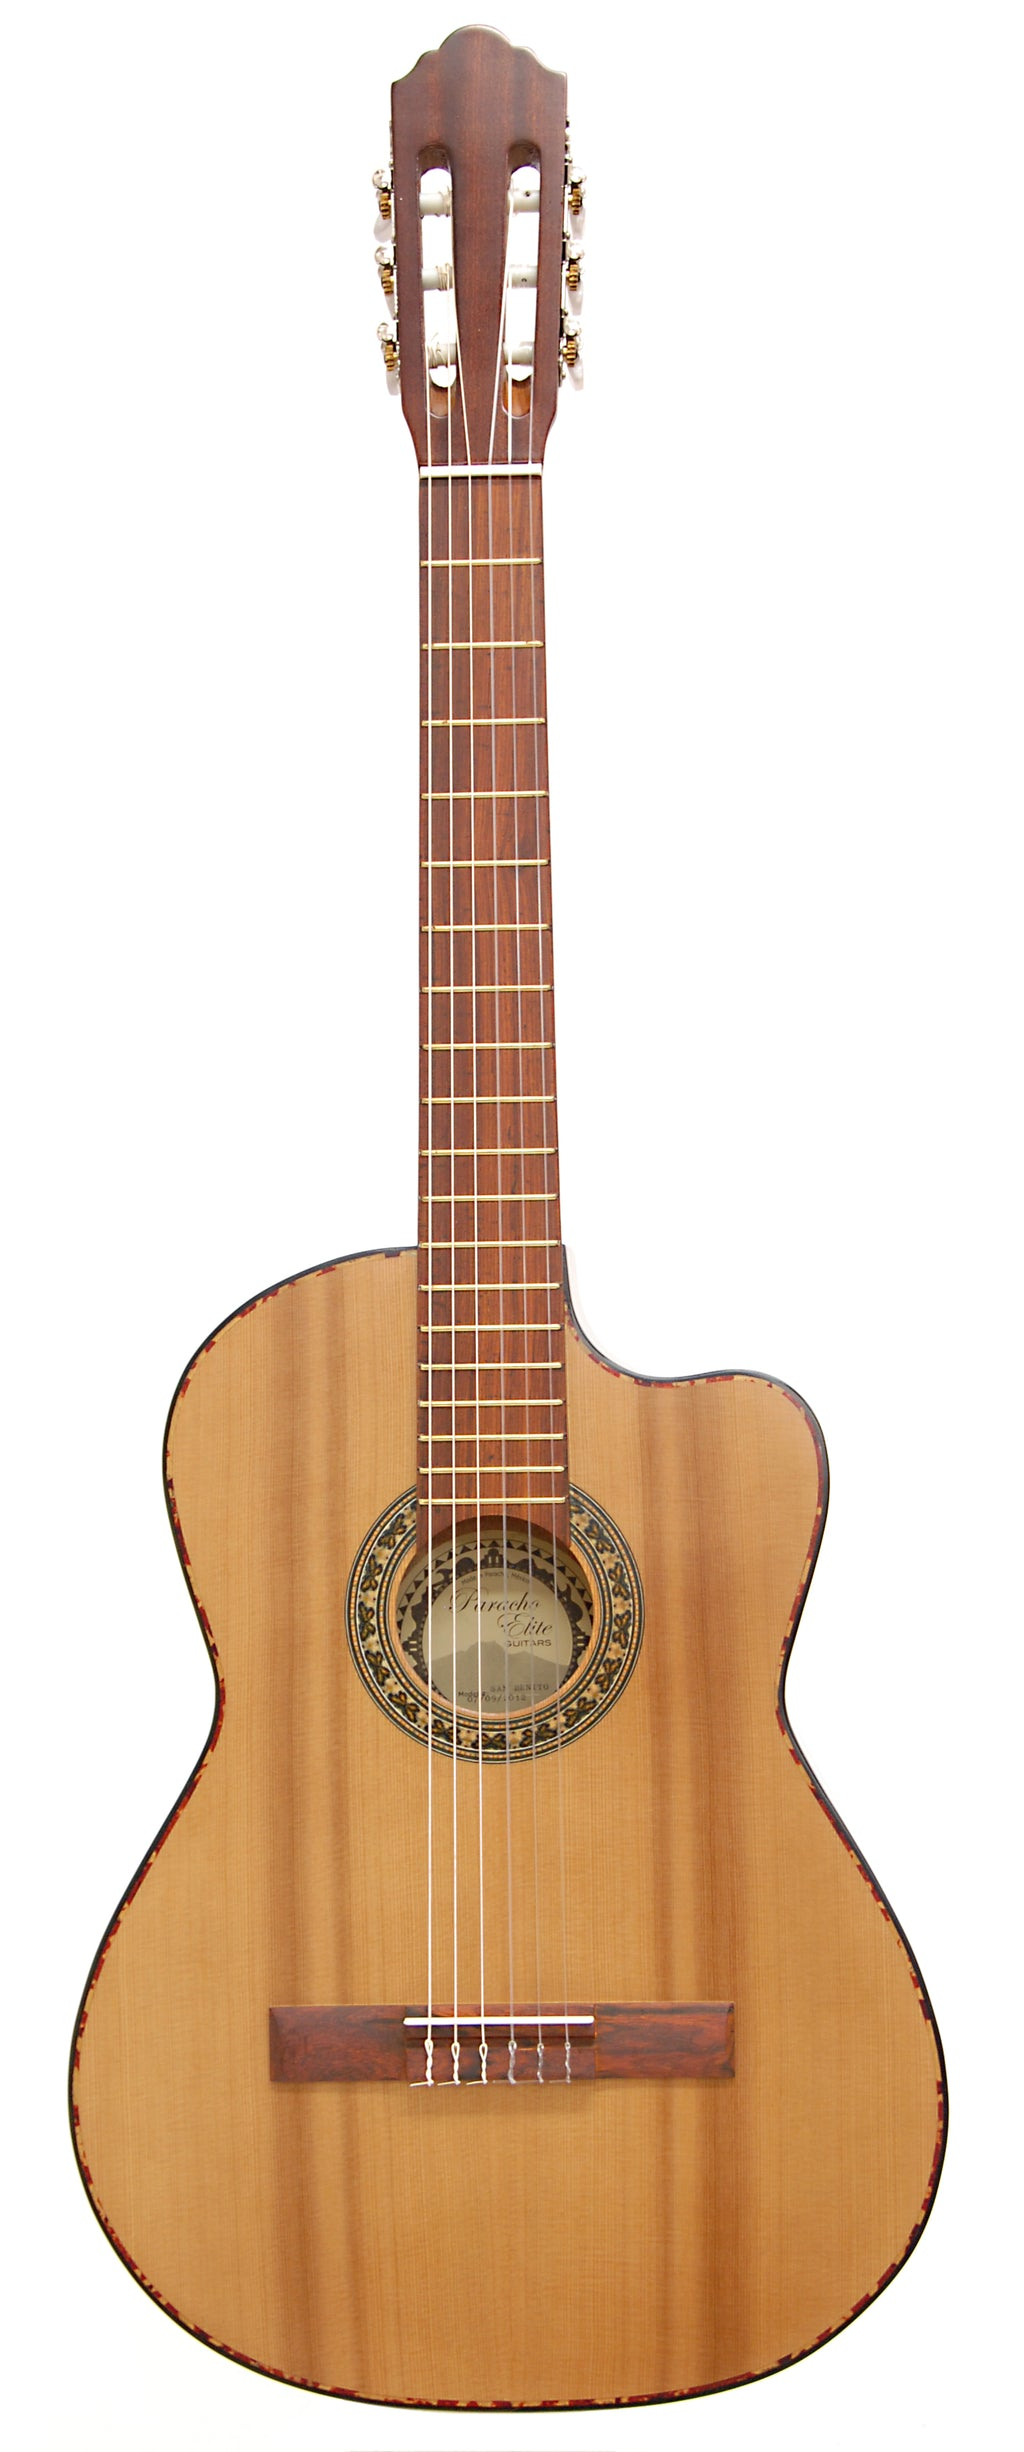 Paracho Elite Guitars San Benito E Cedar Top Class Nylon Natural